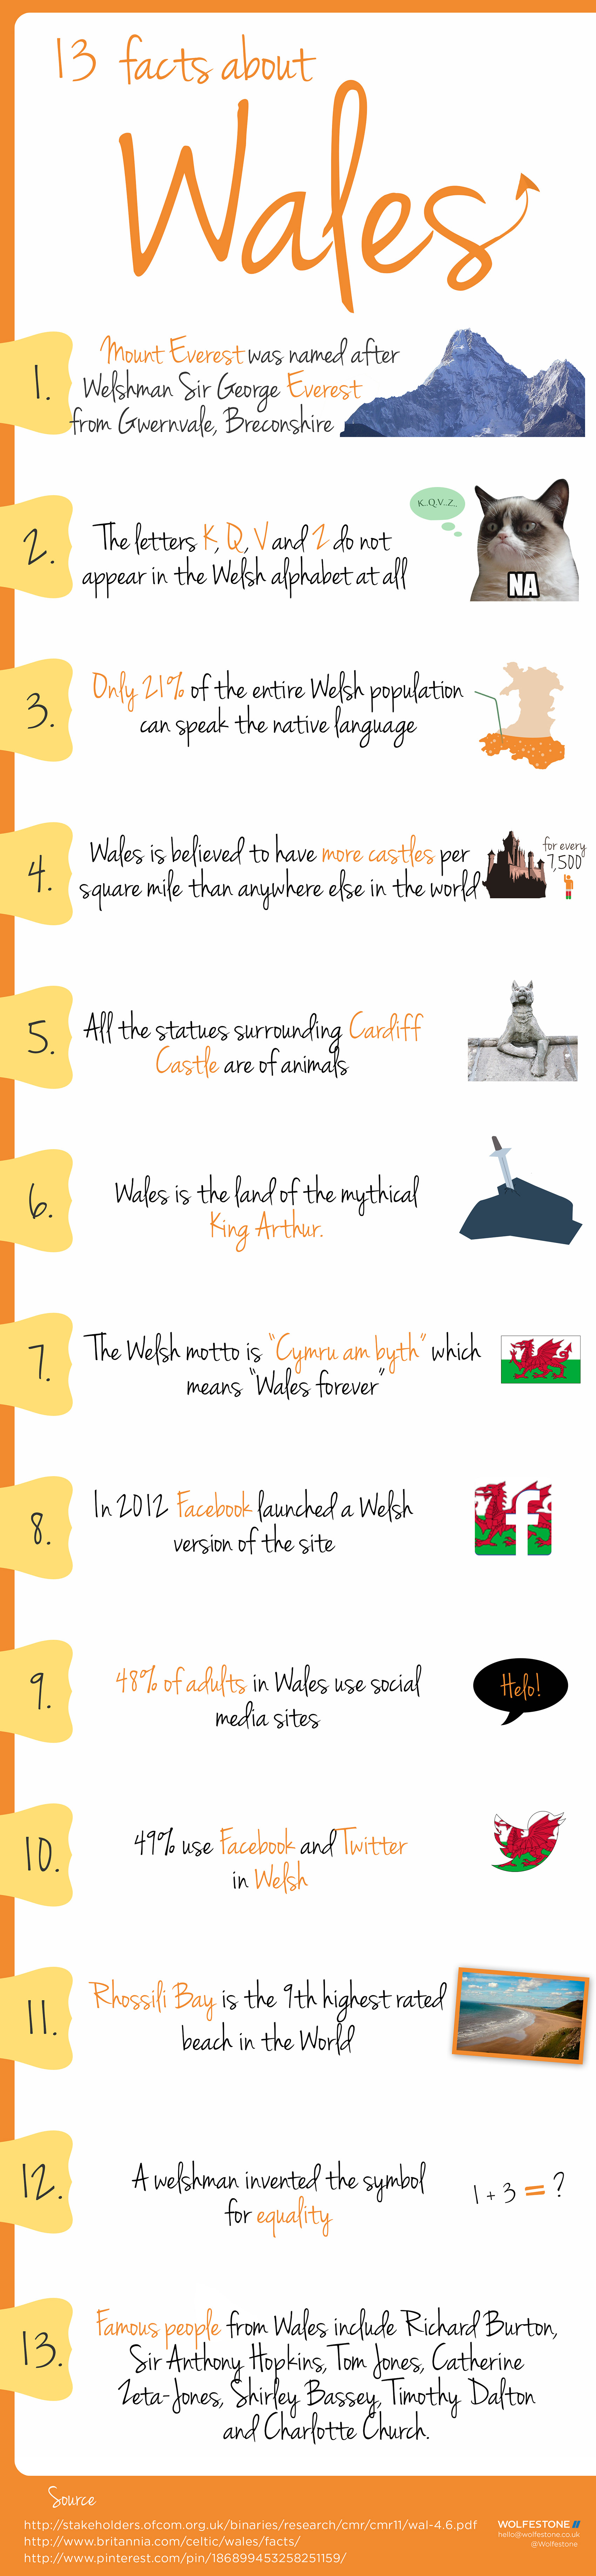 13 Facts about Wales. 1. Mount Everest was named after Welshman Sir George Everest from Gwernvale, Breconshire. 2. The letters K, Q, V and Z do not appear in the Welsh alphabet at all. 3. Only 21% of the entire Welsh population can speak the native language. 4. Wales is believed to have more castles per square mile than anywhere else in the world. A castle for every 7,500 people. 5. All the statues surrounding Cardiff Castle are of animals. 6. Wales is the land of the mythical King Arthur and Excalibur, the lady of the water. 7. The Welsh motto is 'Cymru am byth' which means Wales forever. 8. In 2012, Facebook launched a Welsh version of the site (although errors still remain in 2016). 9. 48% of adults in Wales use social media sites. 10. 49% use Facebook and Twitter in Welsh. 11. Rhossili Bay is the 9th highest rated beach in the world. 12. A Welshman invented the symbol for equality aka the equal sign (=). 13. Famous people from Wales include Richard Burton, Sir Anthony Hopkins, Tom Jones, Catherine Zeta-Jones, Shirley Bassey, Timothy Dalton, Charlotte Church, Catherine Jenkins and Bonnie Tyler.